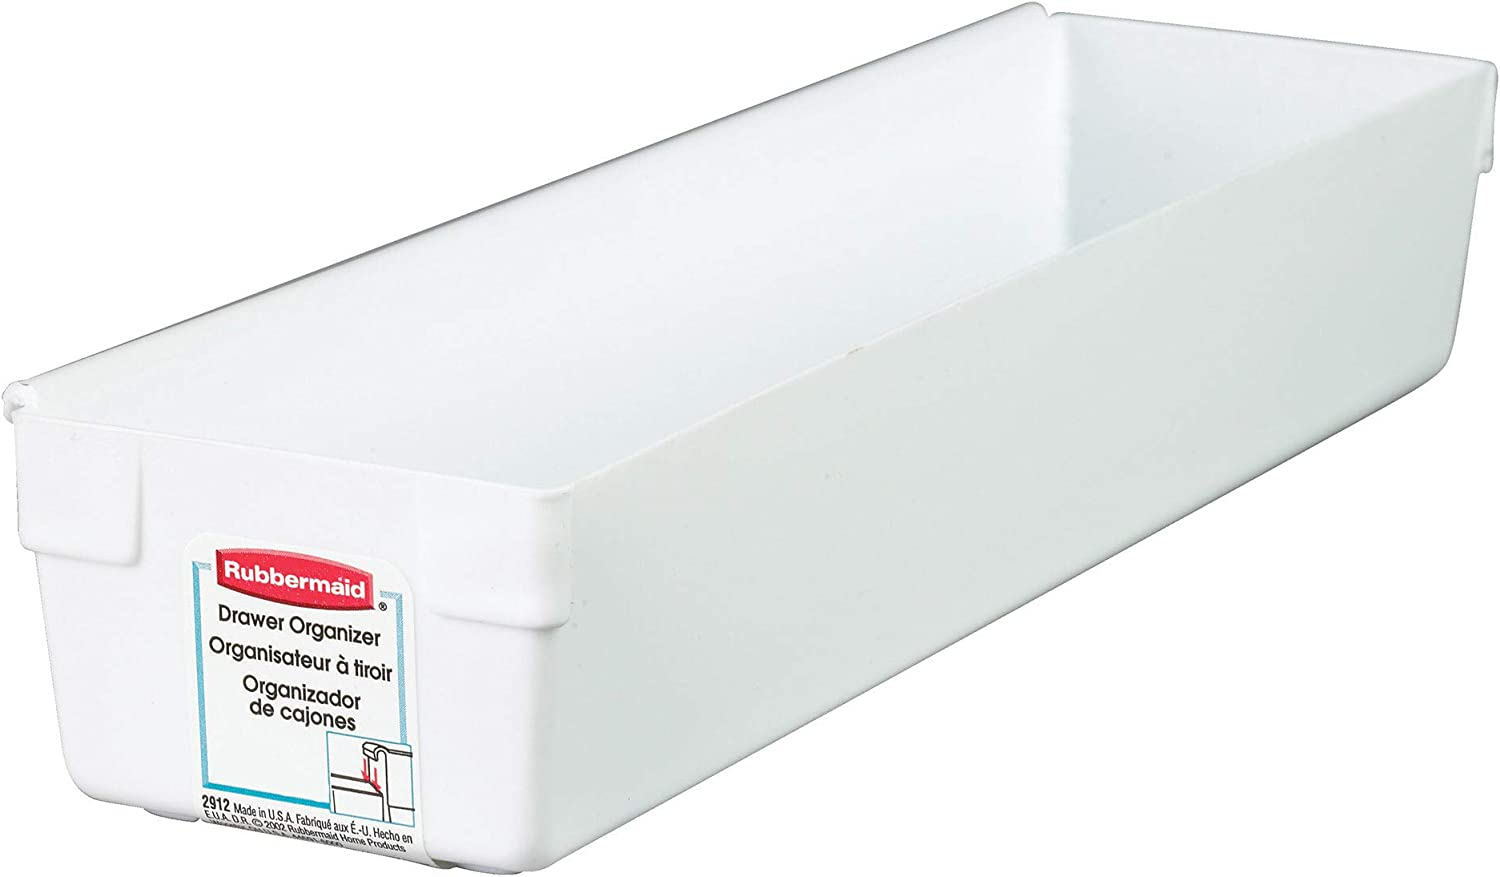 Superior Rubbermaid - 2918-RD-WHT Drawer 6 Organizer Ranking TOP1 pack